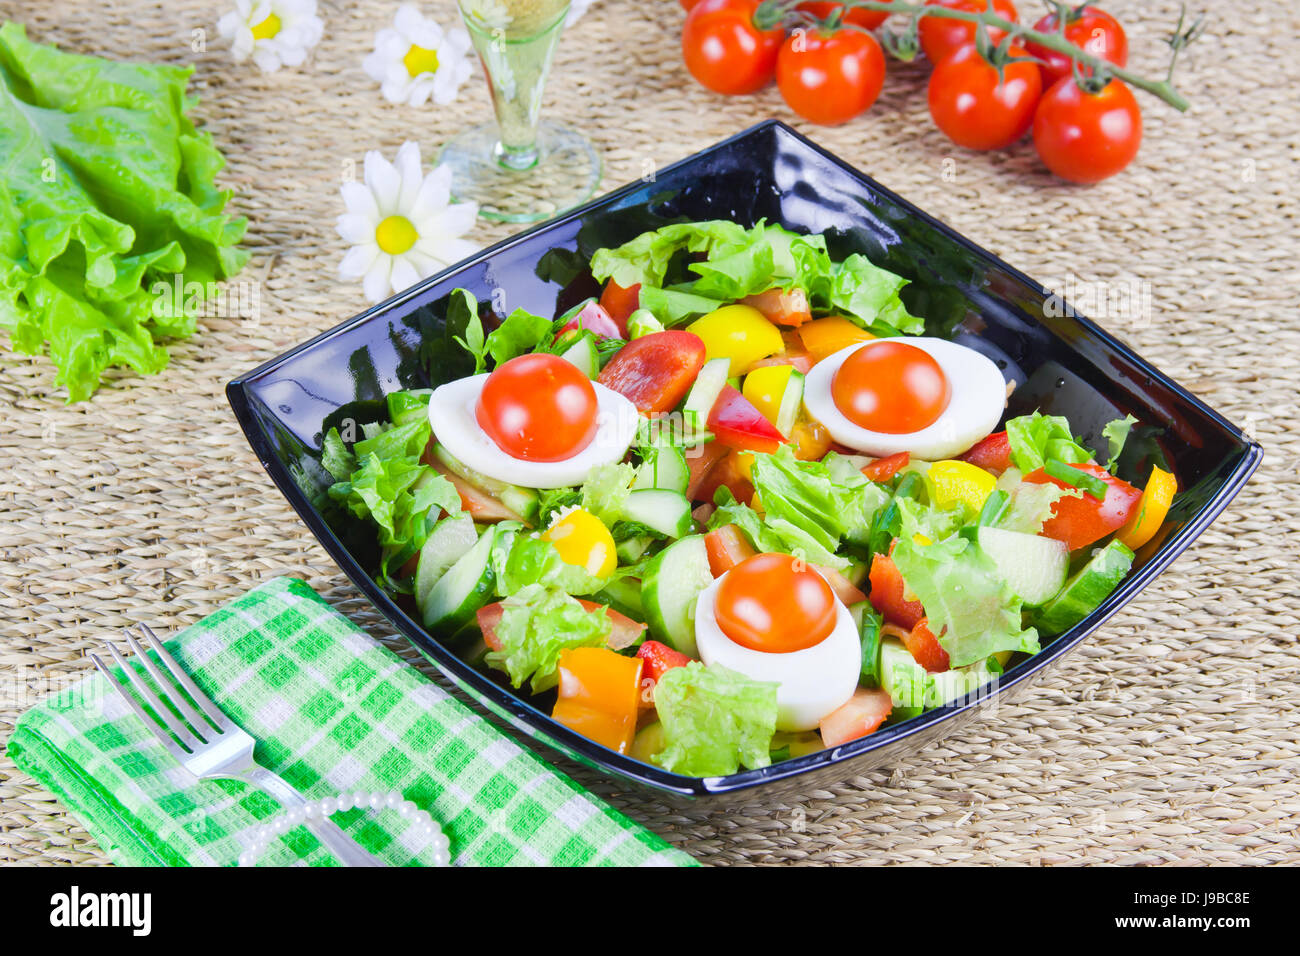 Decorative Dish Lettuce From Vegetables With Fresh Greenery In A Decorative Dish